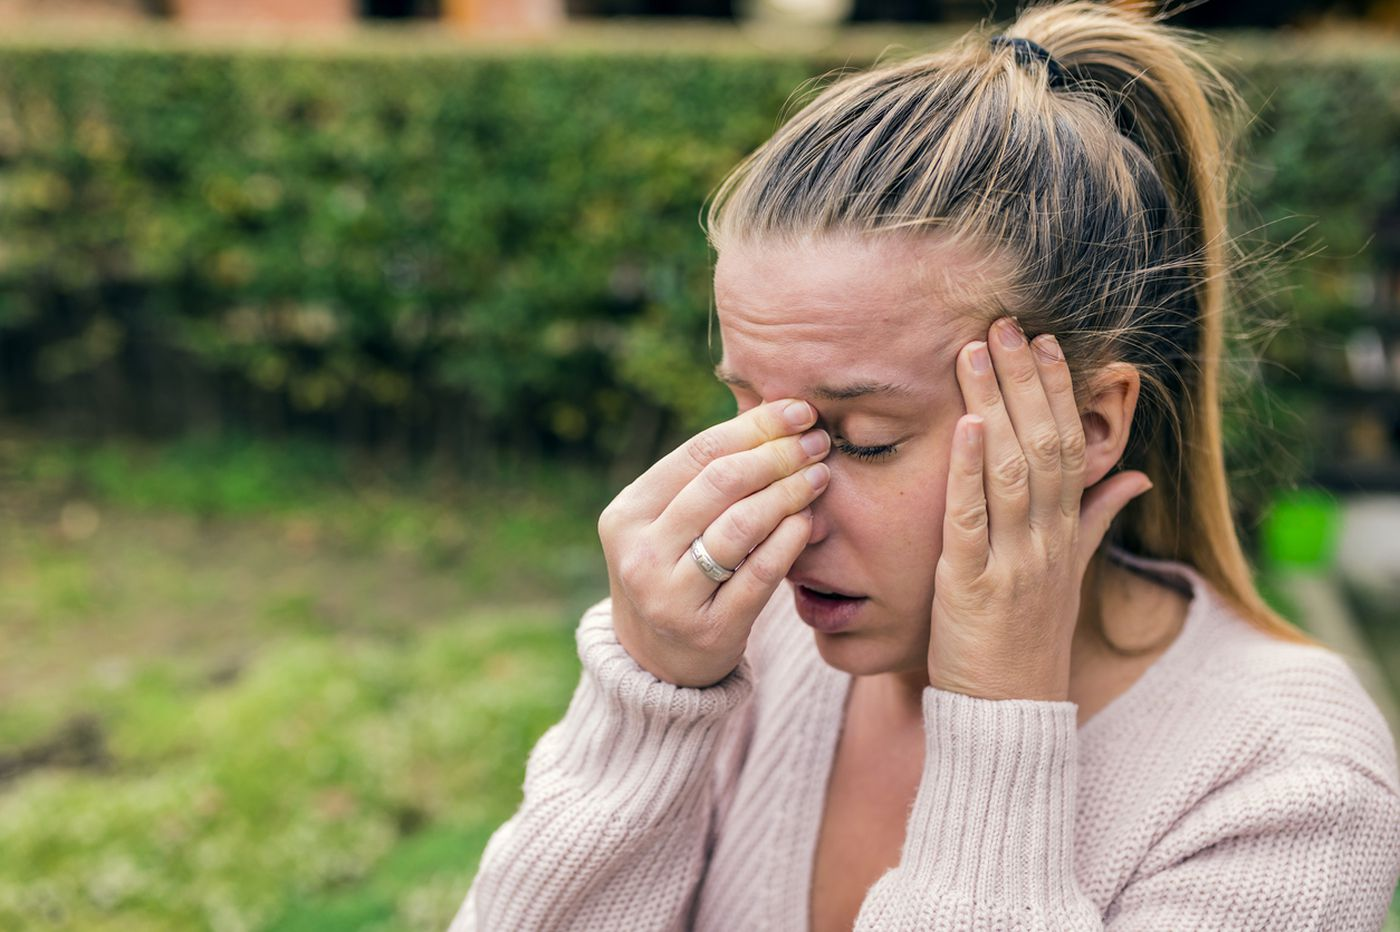 Q&A: What's the difference between a summer cold and a sinus